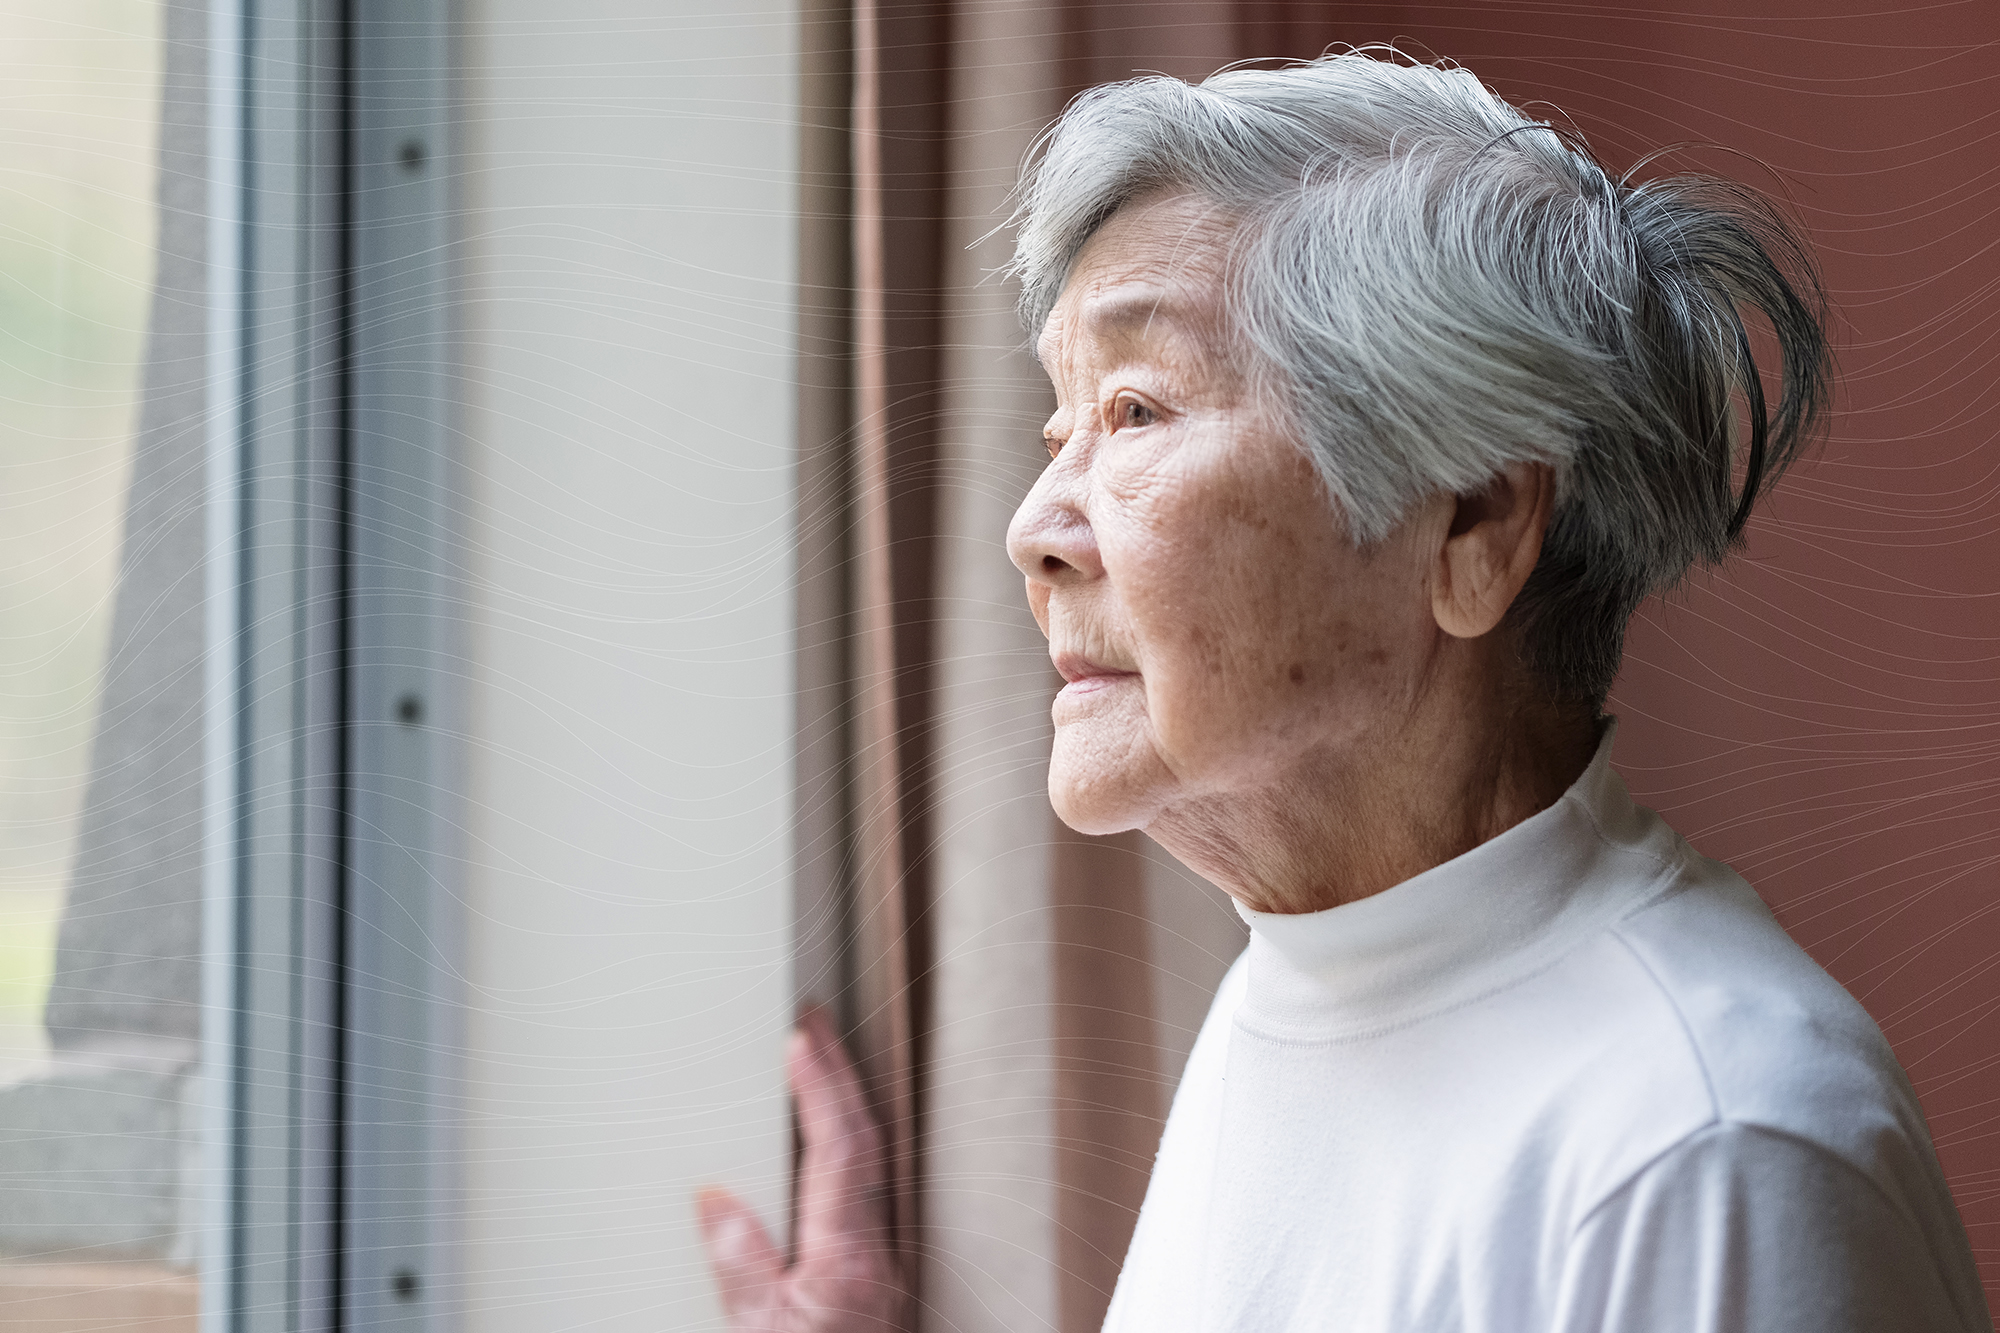 Serious Asian Senior Woman in 90s Looking Out of Window